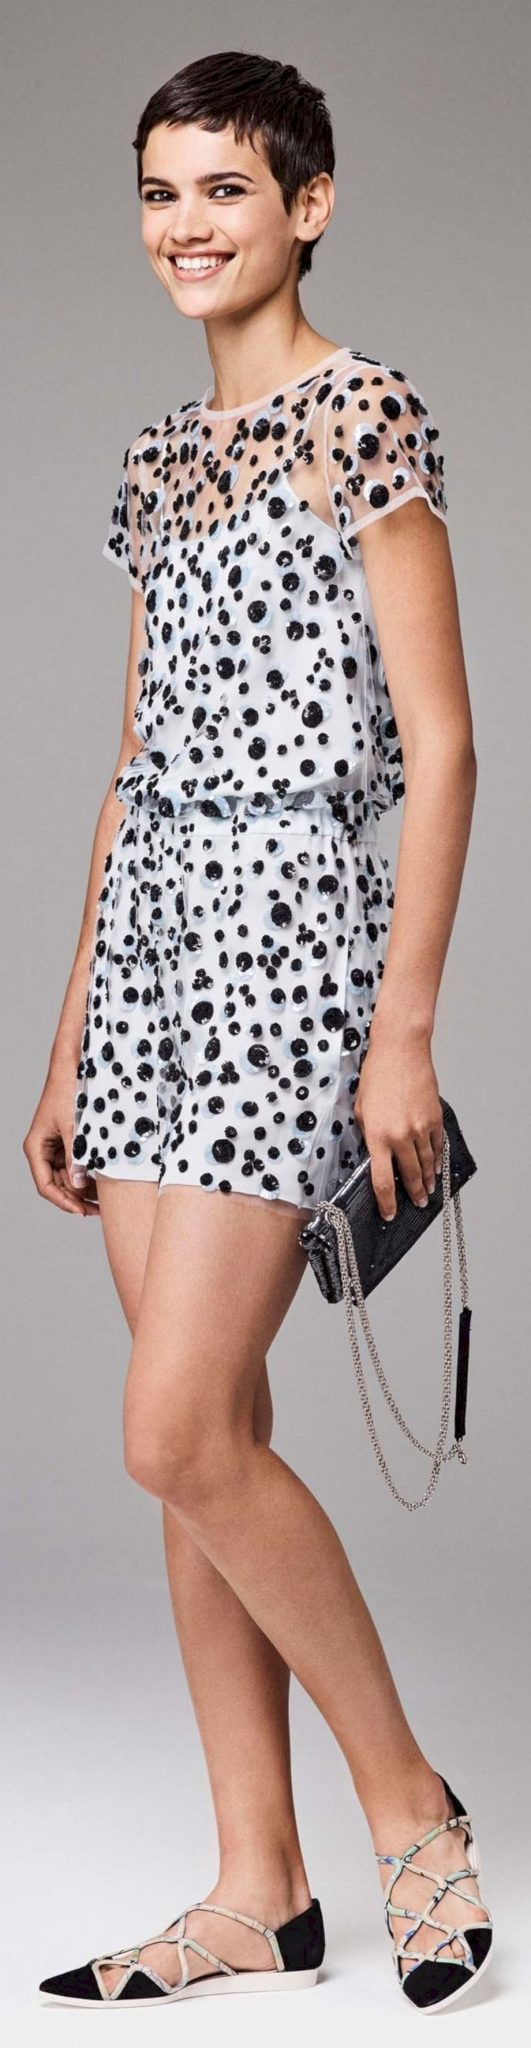 Polkadot short dress 60